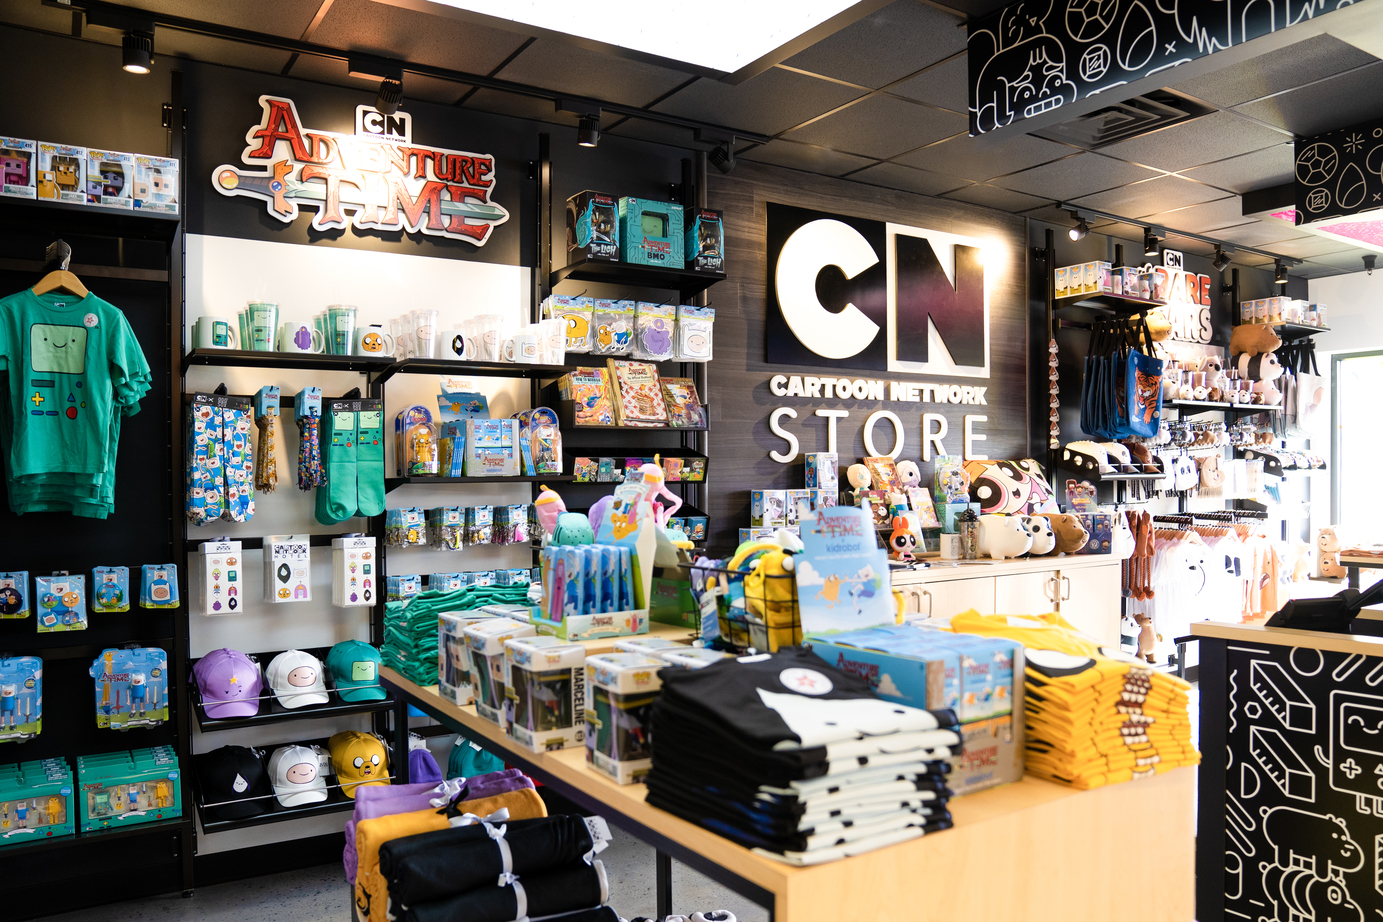 Overview of the Cartoon Network Hotel store, with a variety of colorful plush toys, apparel, souvenirs and more